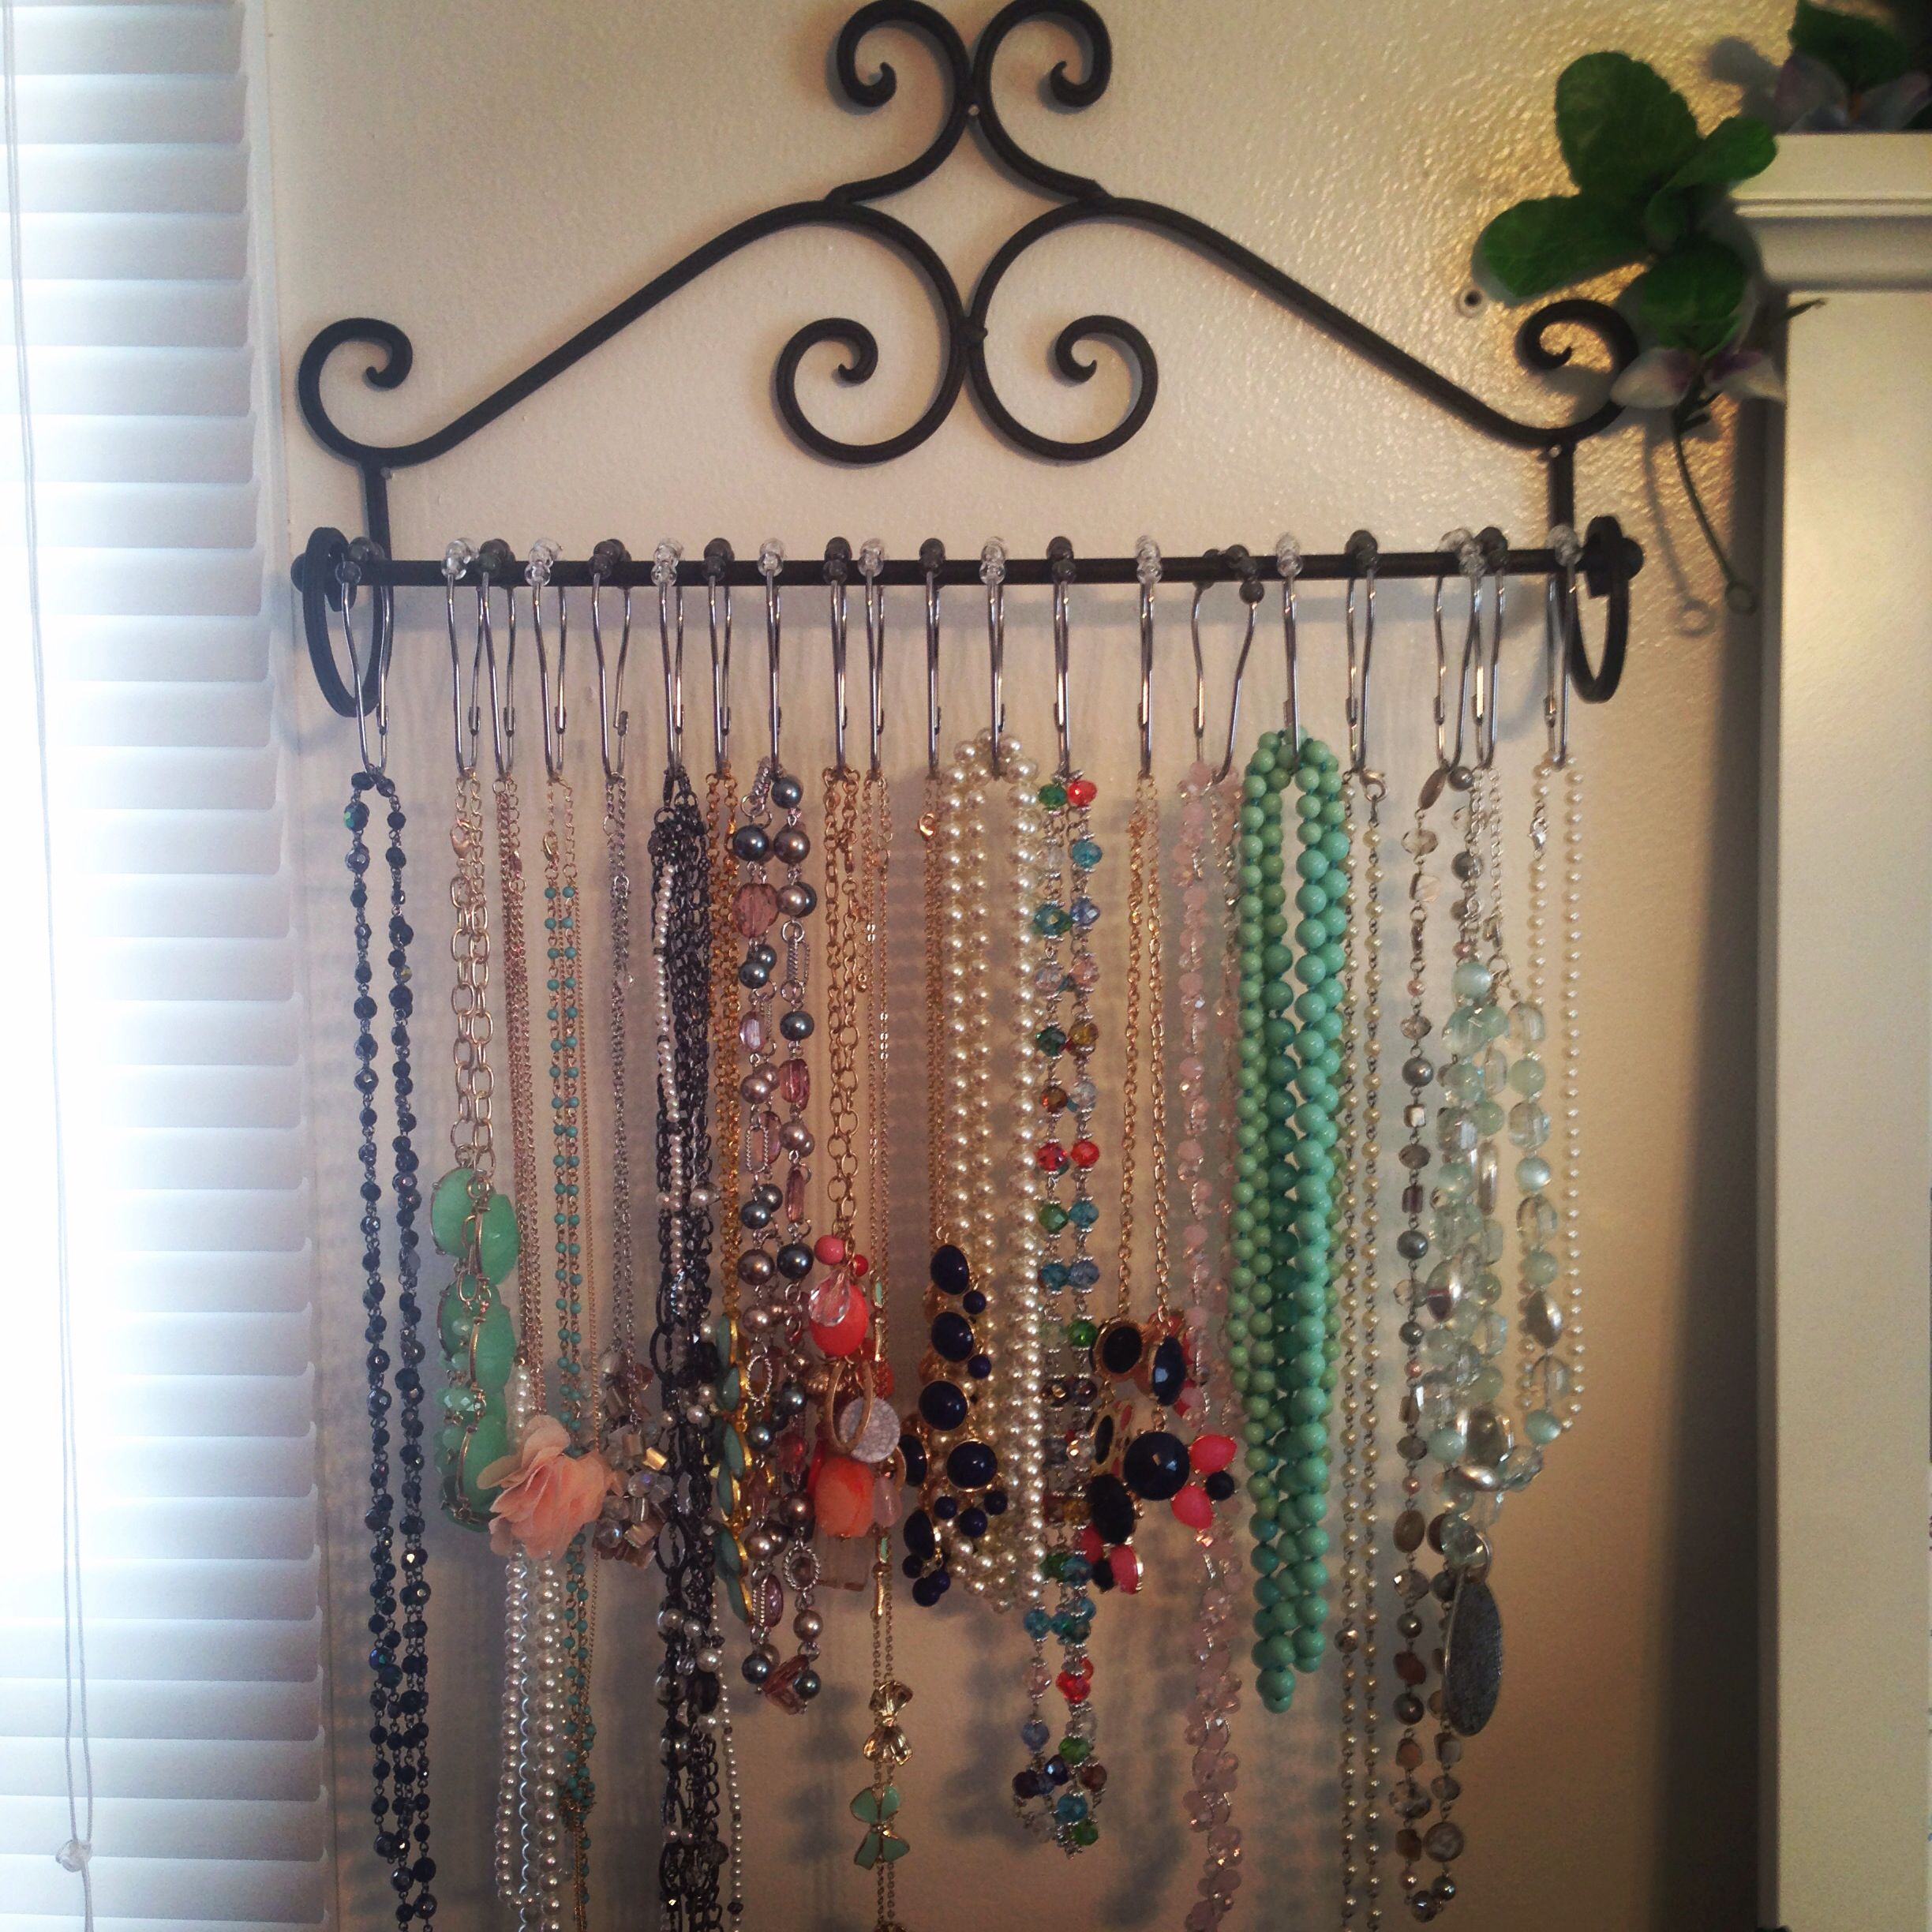 Big Pinterest Inspired Project Necklaceorganization Towel Rack From Hobbylobby Clearance For 5 99 Jewerly Organizer Necklace Scarf Organization